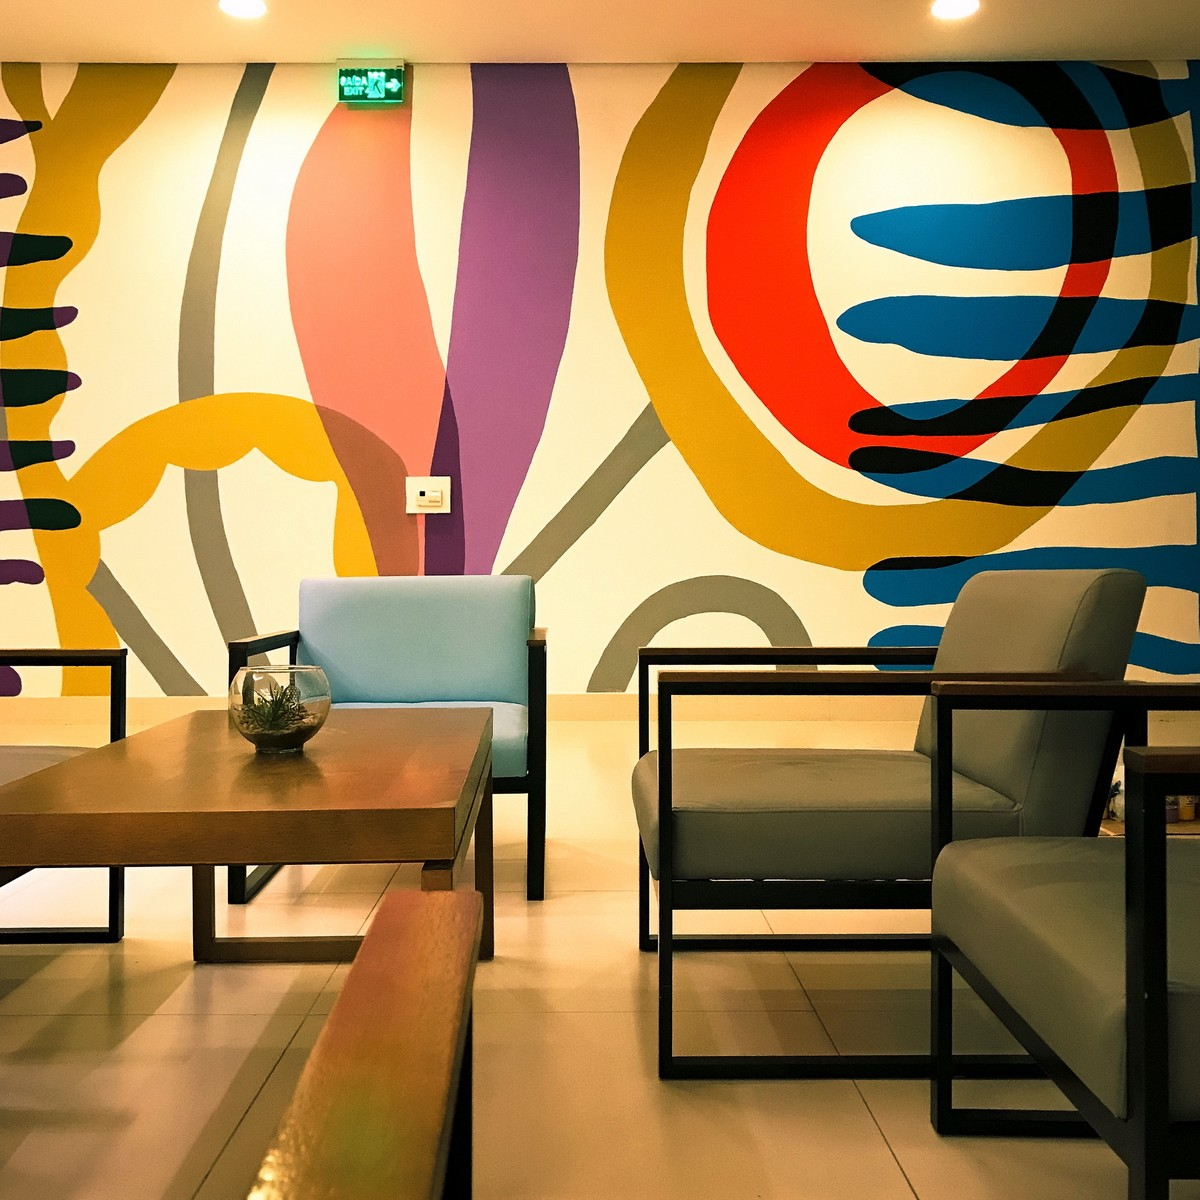 Decorative Mural at the Lobby of Novotel